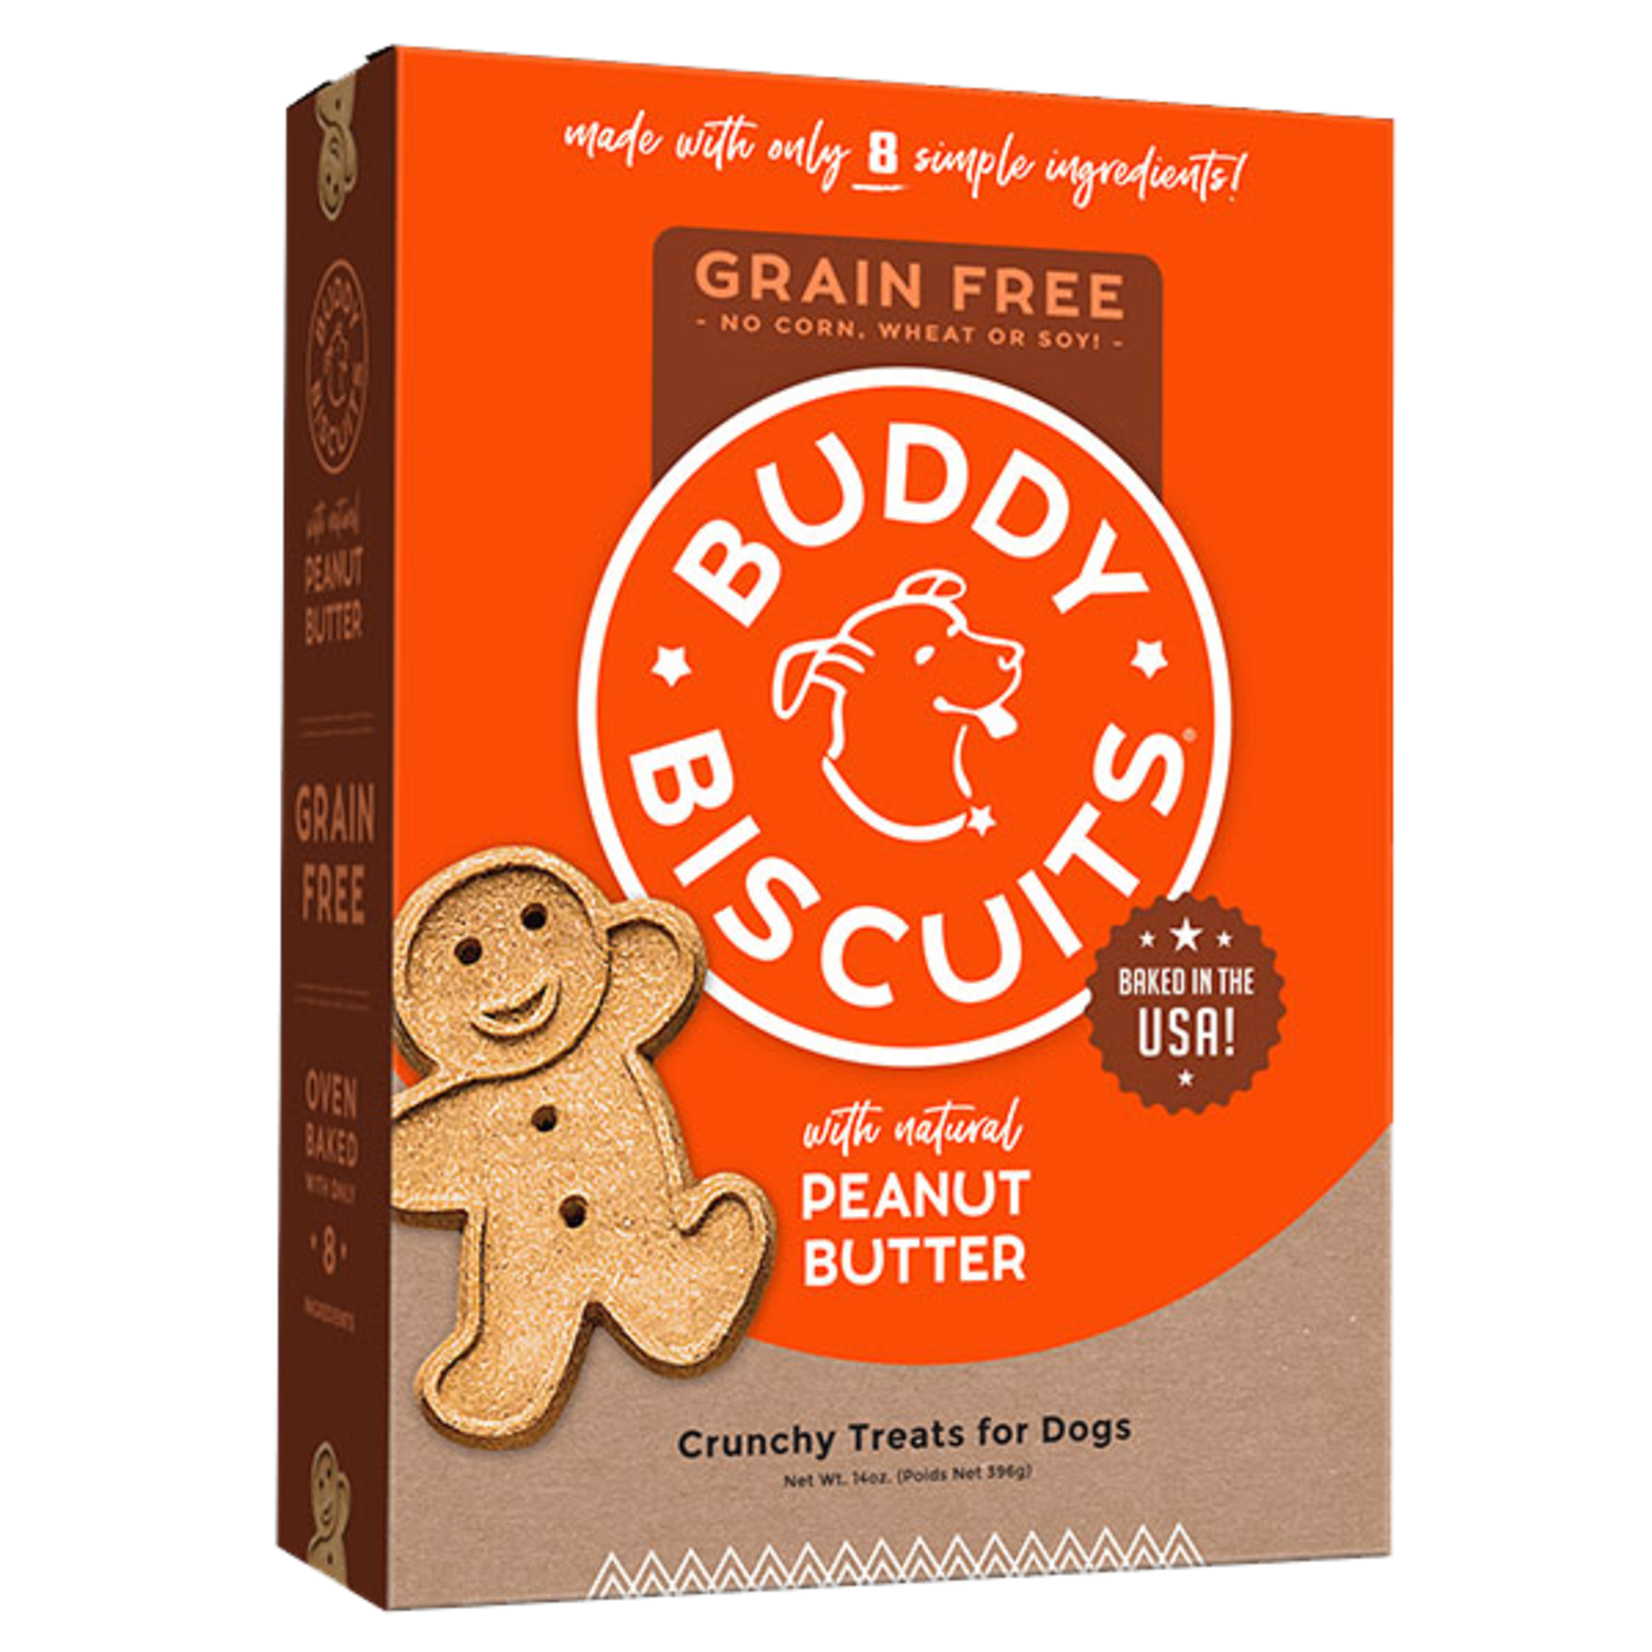 Cloud Star Buddy Biscuits Grain Free Oven Baked Peanut Butter Dog Treats 14oz